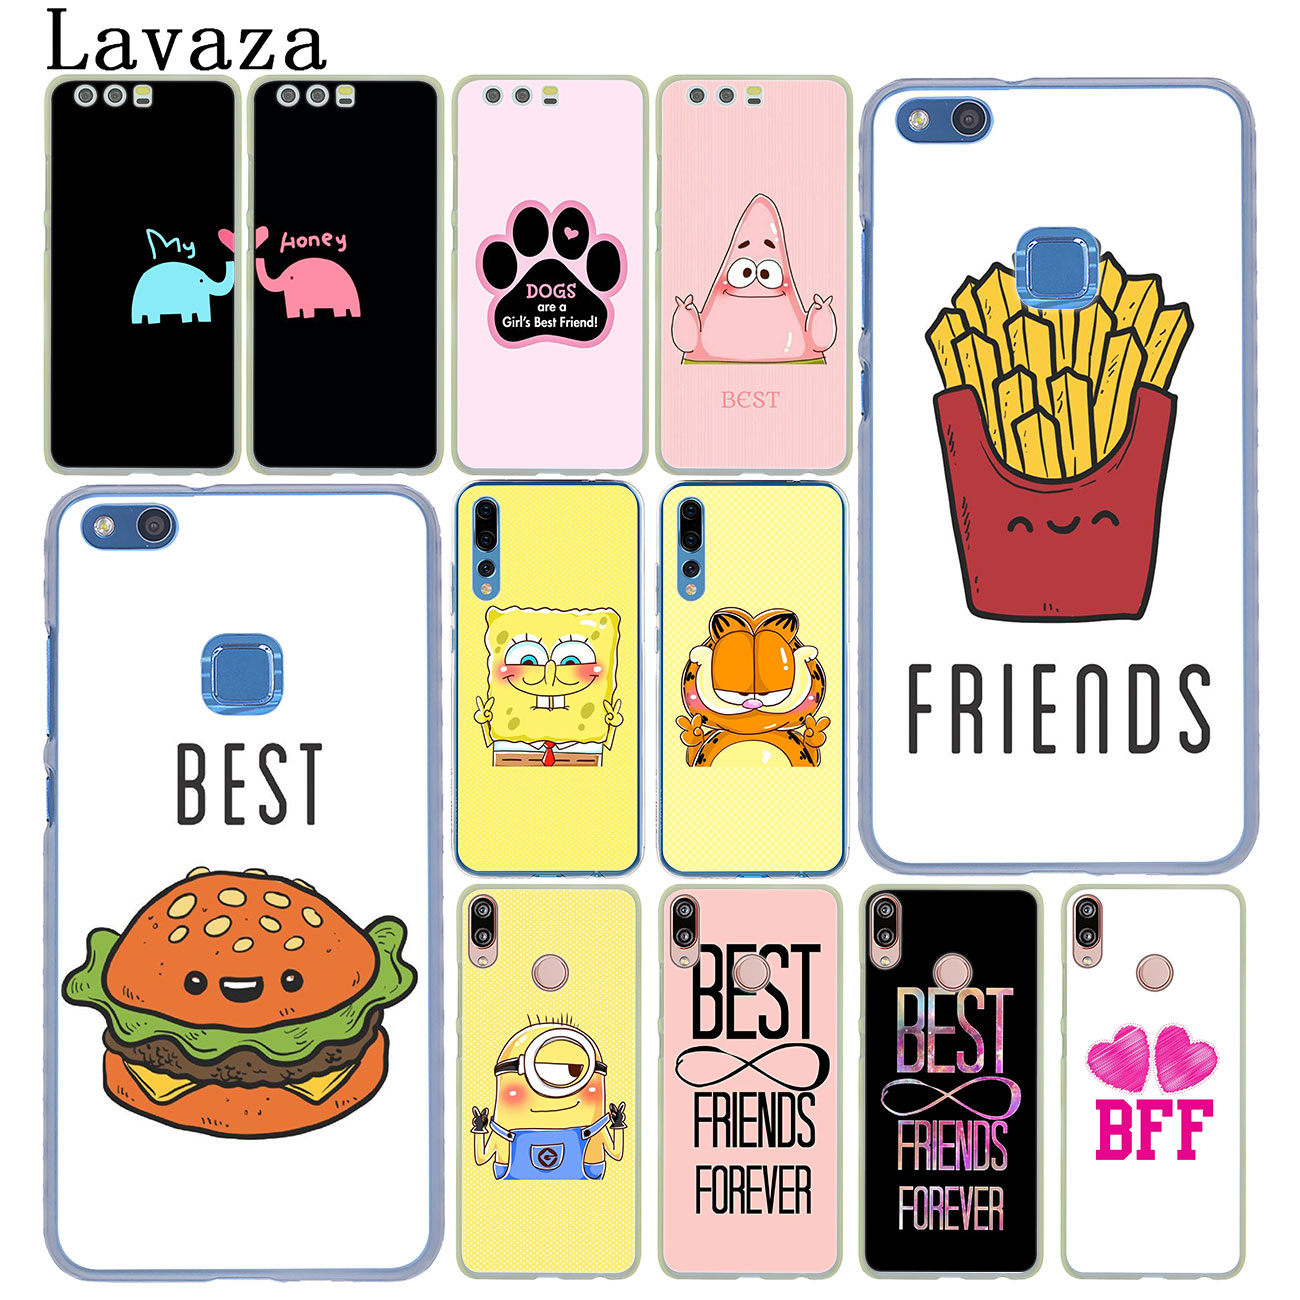 Lavaza Best Friends <font><b>Girl</b></font> Phone <font><b>Case</b></font> for <font><b>Huawei</b></font> Y9 <font><b>Y7</b></font> Y6 Prime <font><b>2019</b></font> 2018 Honor 20 10 8C 8X 8 9X 9 Lite 7C 7X 7A Pro Cover image